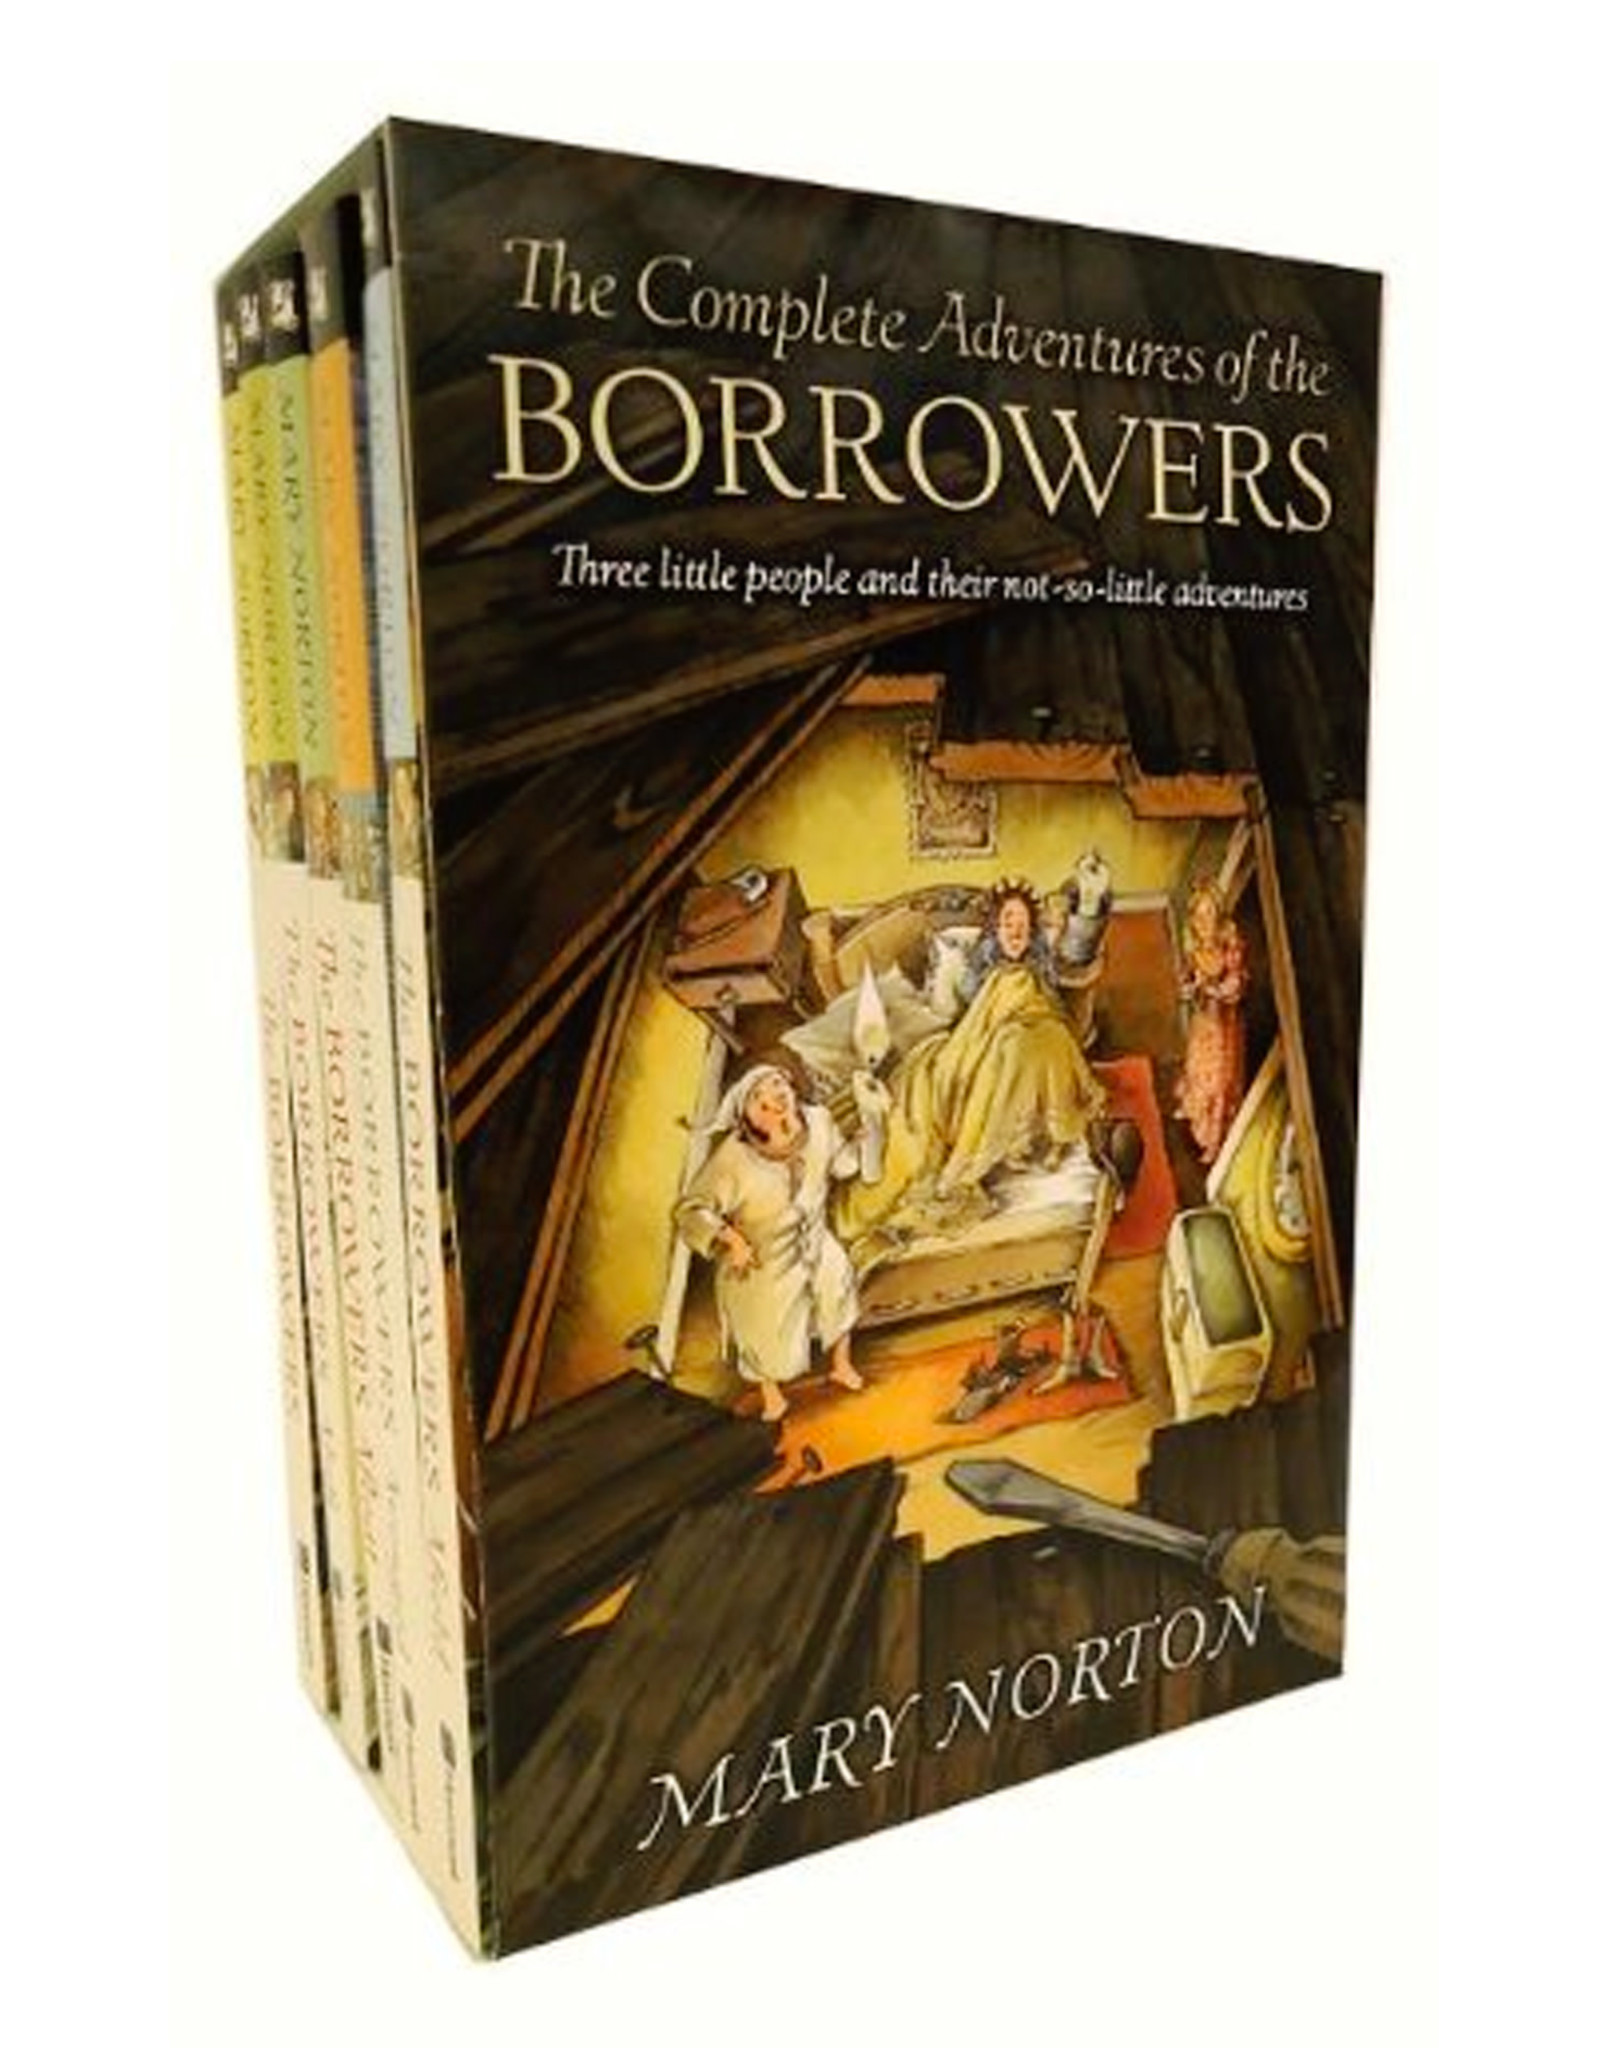 Houghton Miflin Harcourt COMPLETE ADVENTURES OF THE BORROWERS BOX